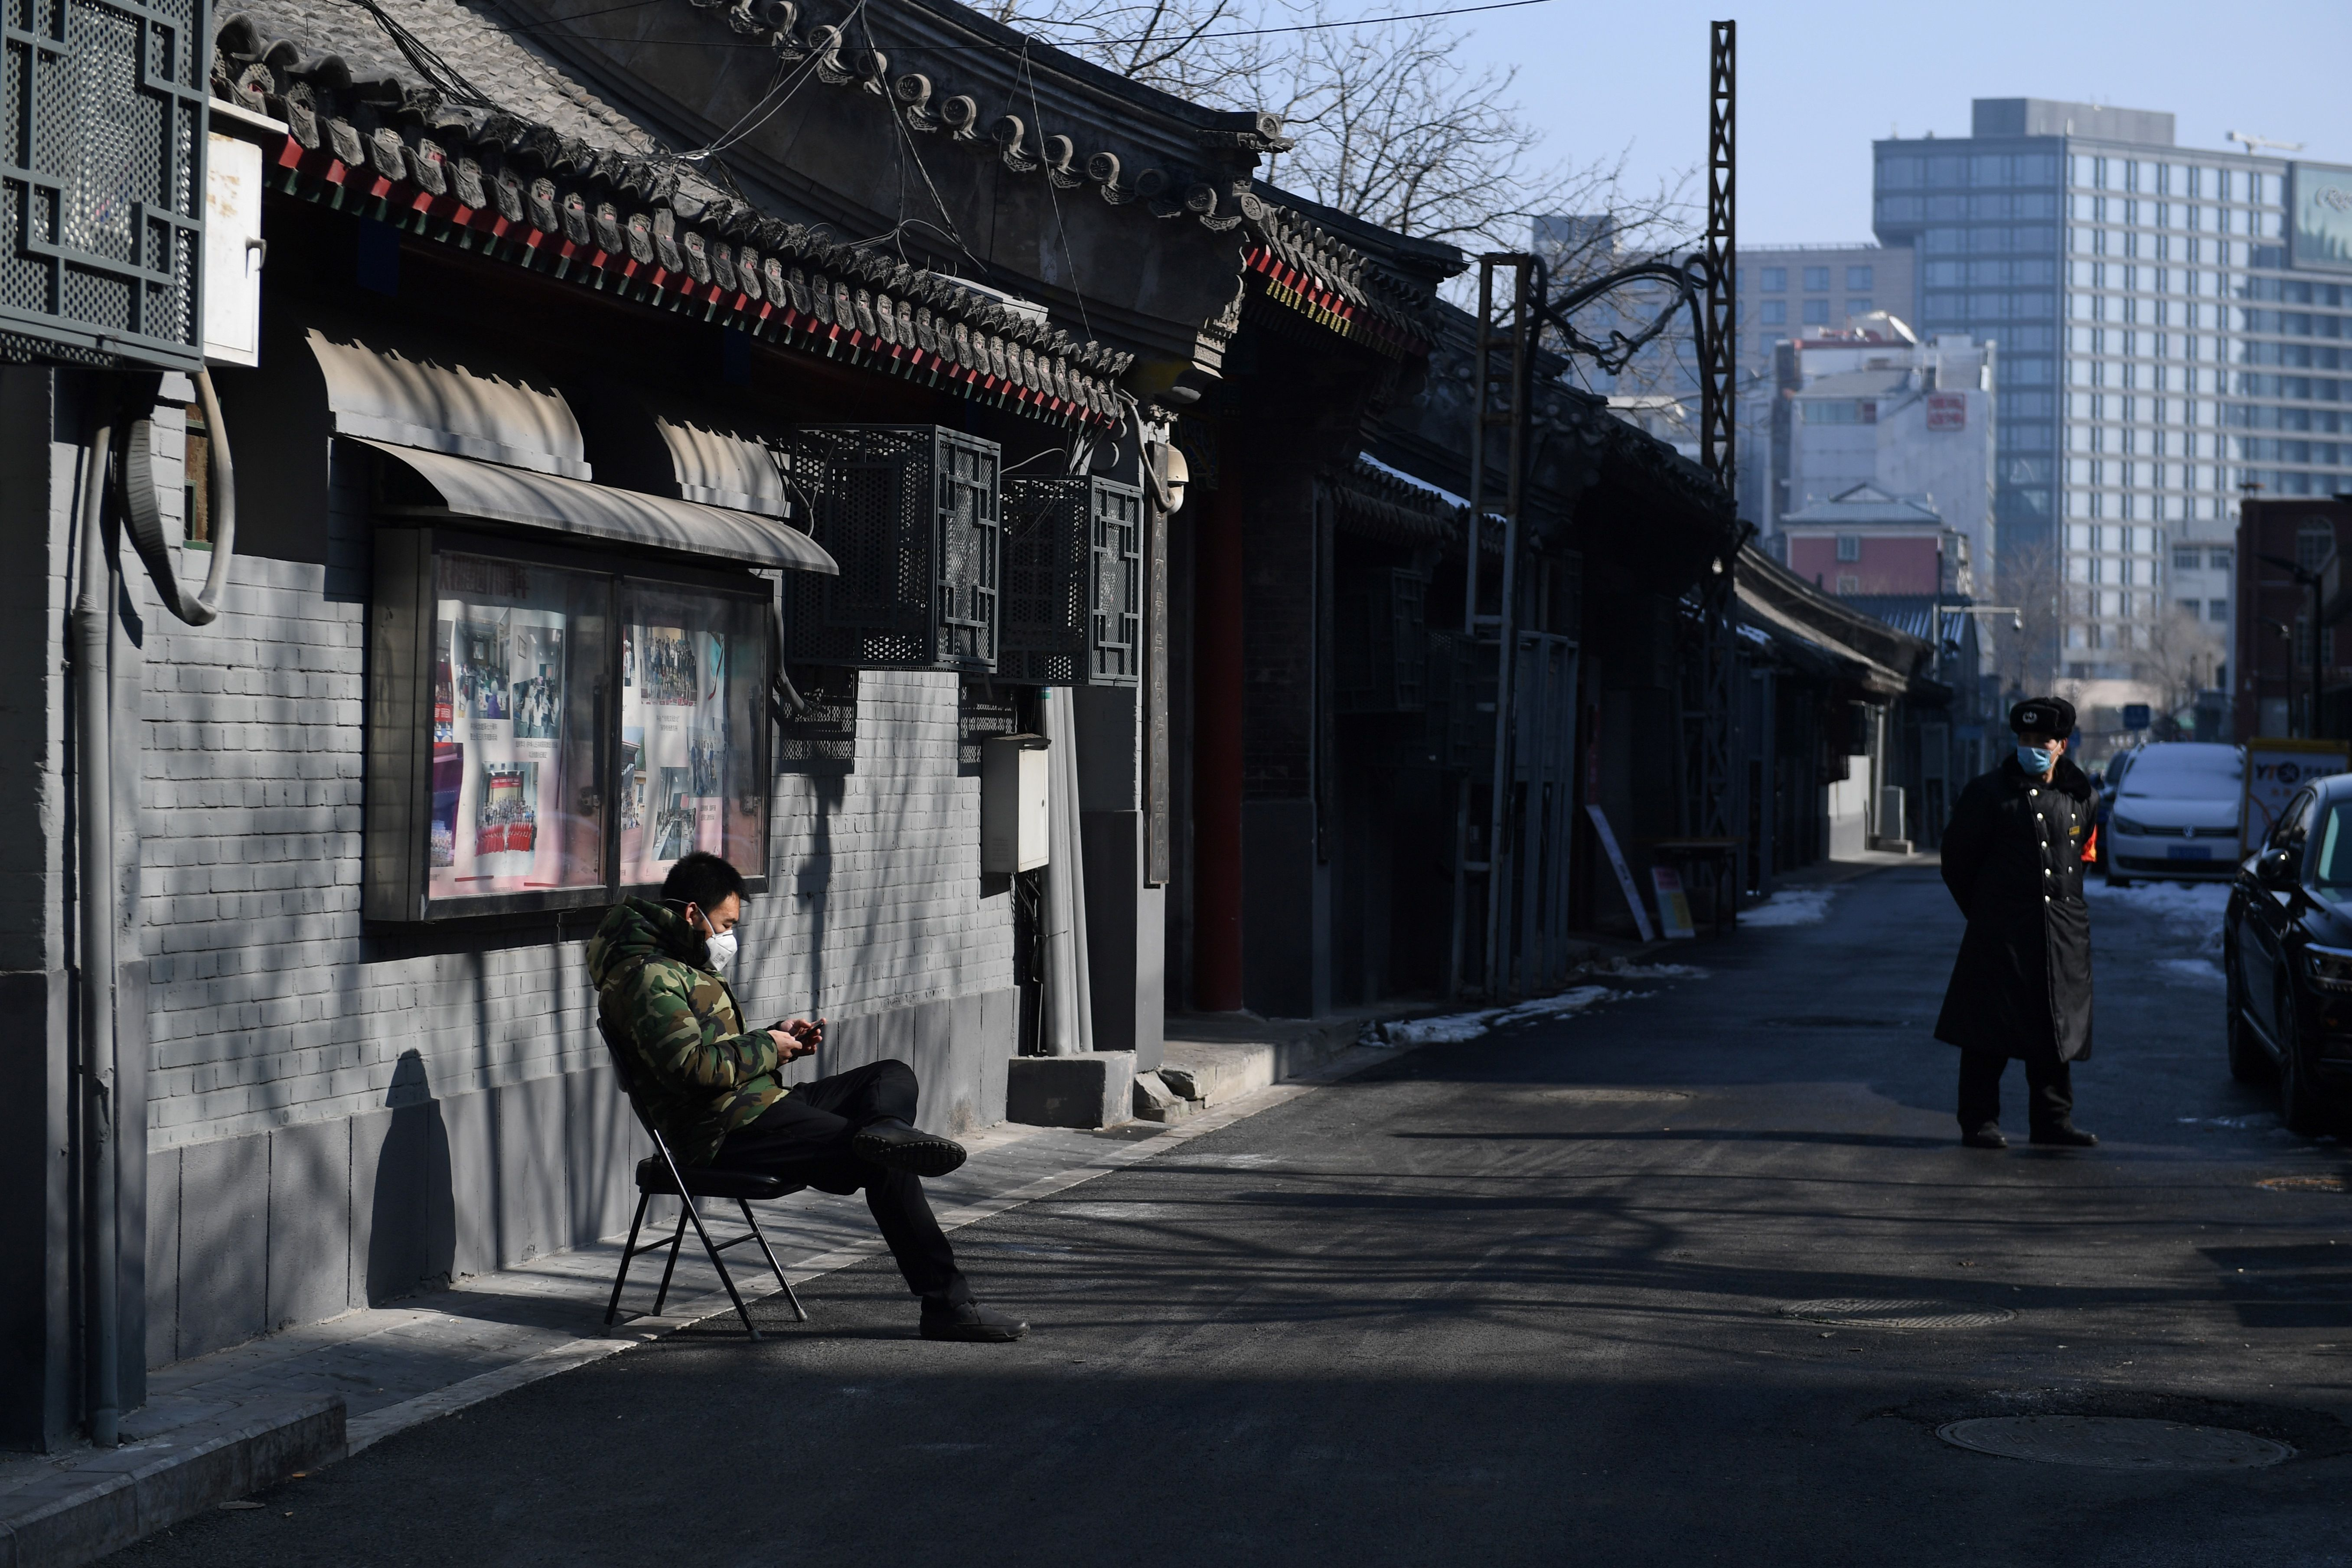 A man monitors traffic in an alley in central Beijing on February 10, 2020.